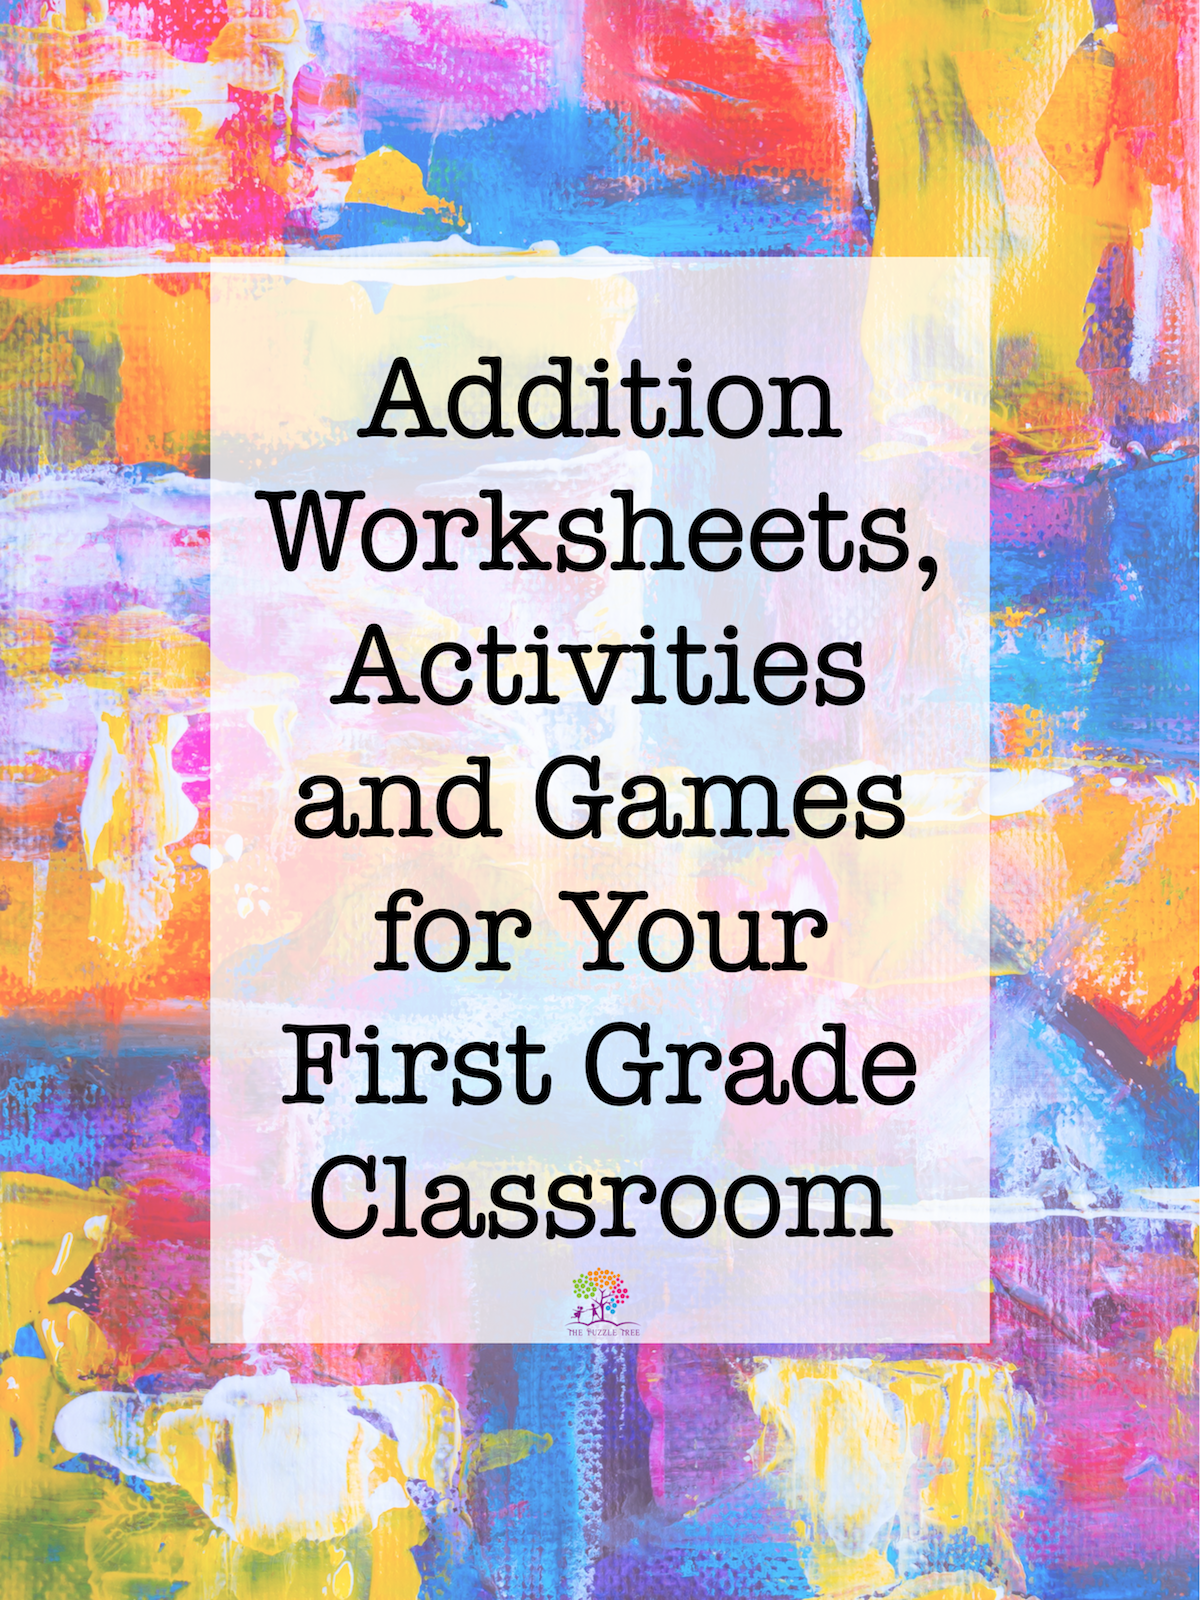 Addition Worksheets Activities And Games For Your First